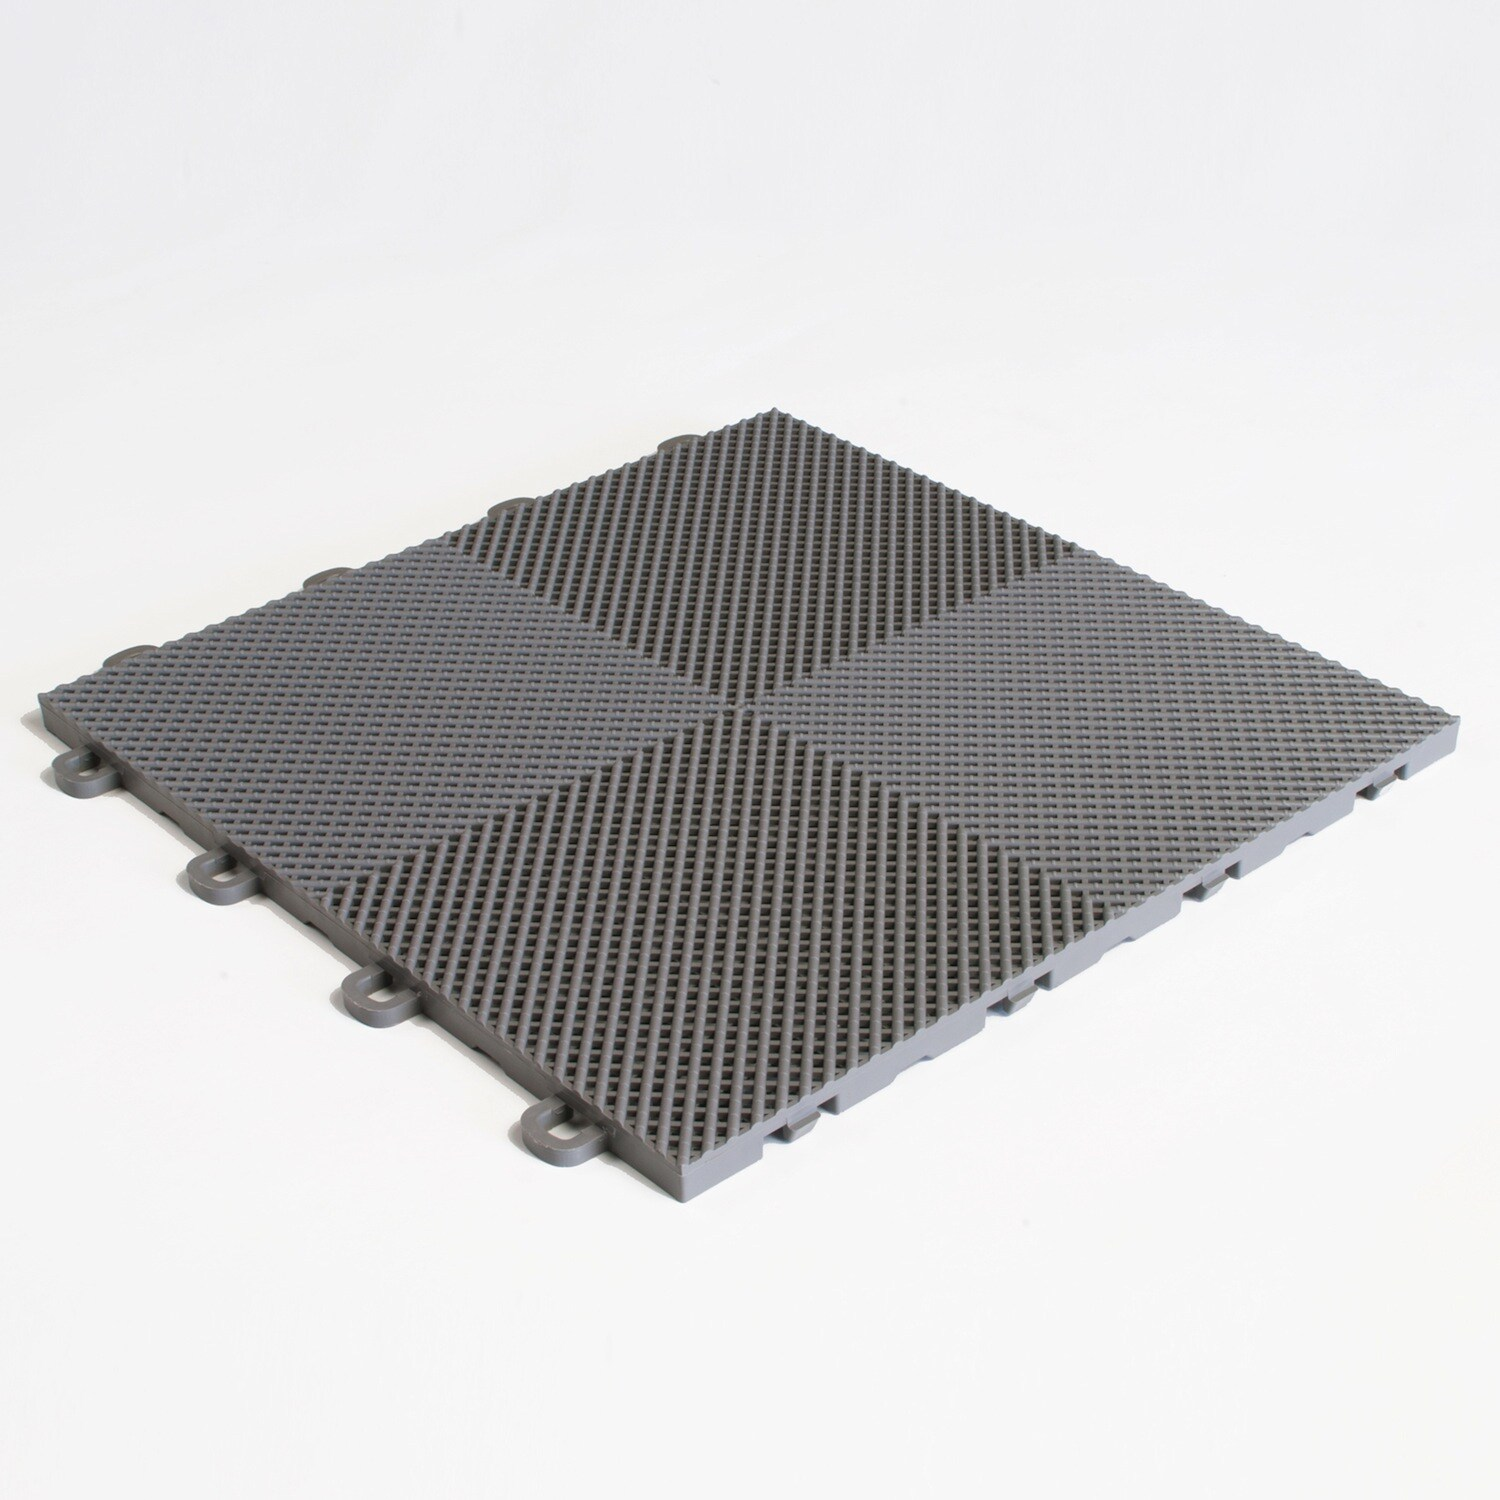 Blocktile deck and patio flooring interlocking perforated tiles blocktile deck and patio flooring interlocking perforated tiles pack of 30 free shipping today overstock 14982460 dailygadgetfo Images